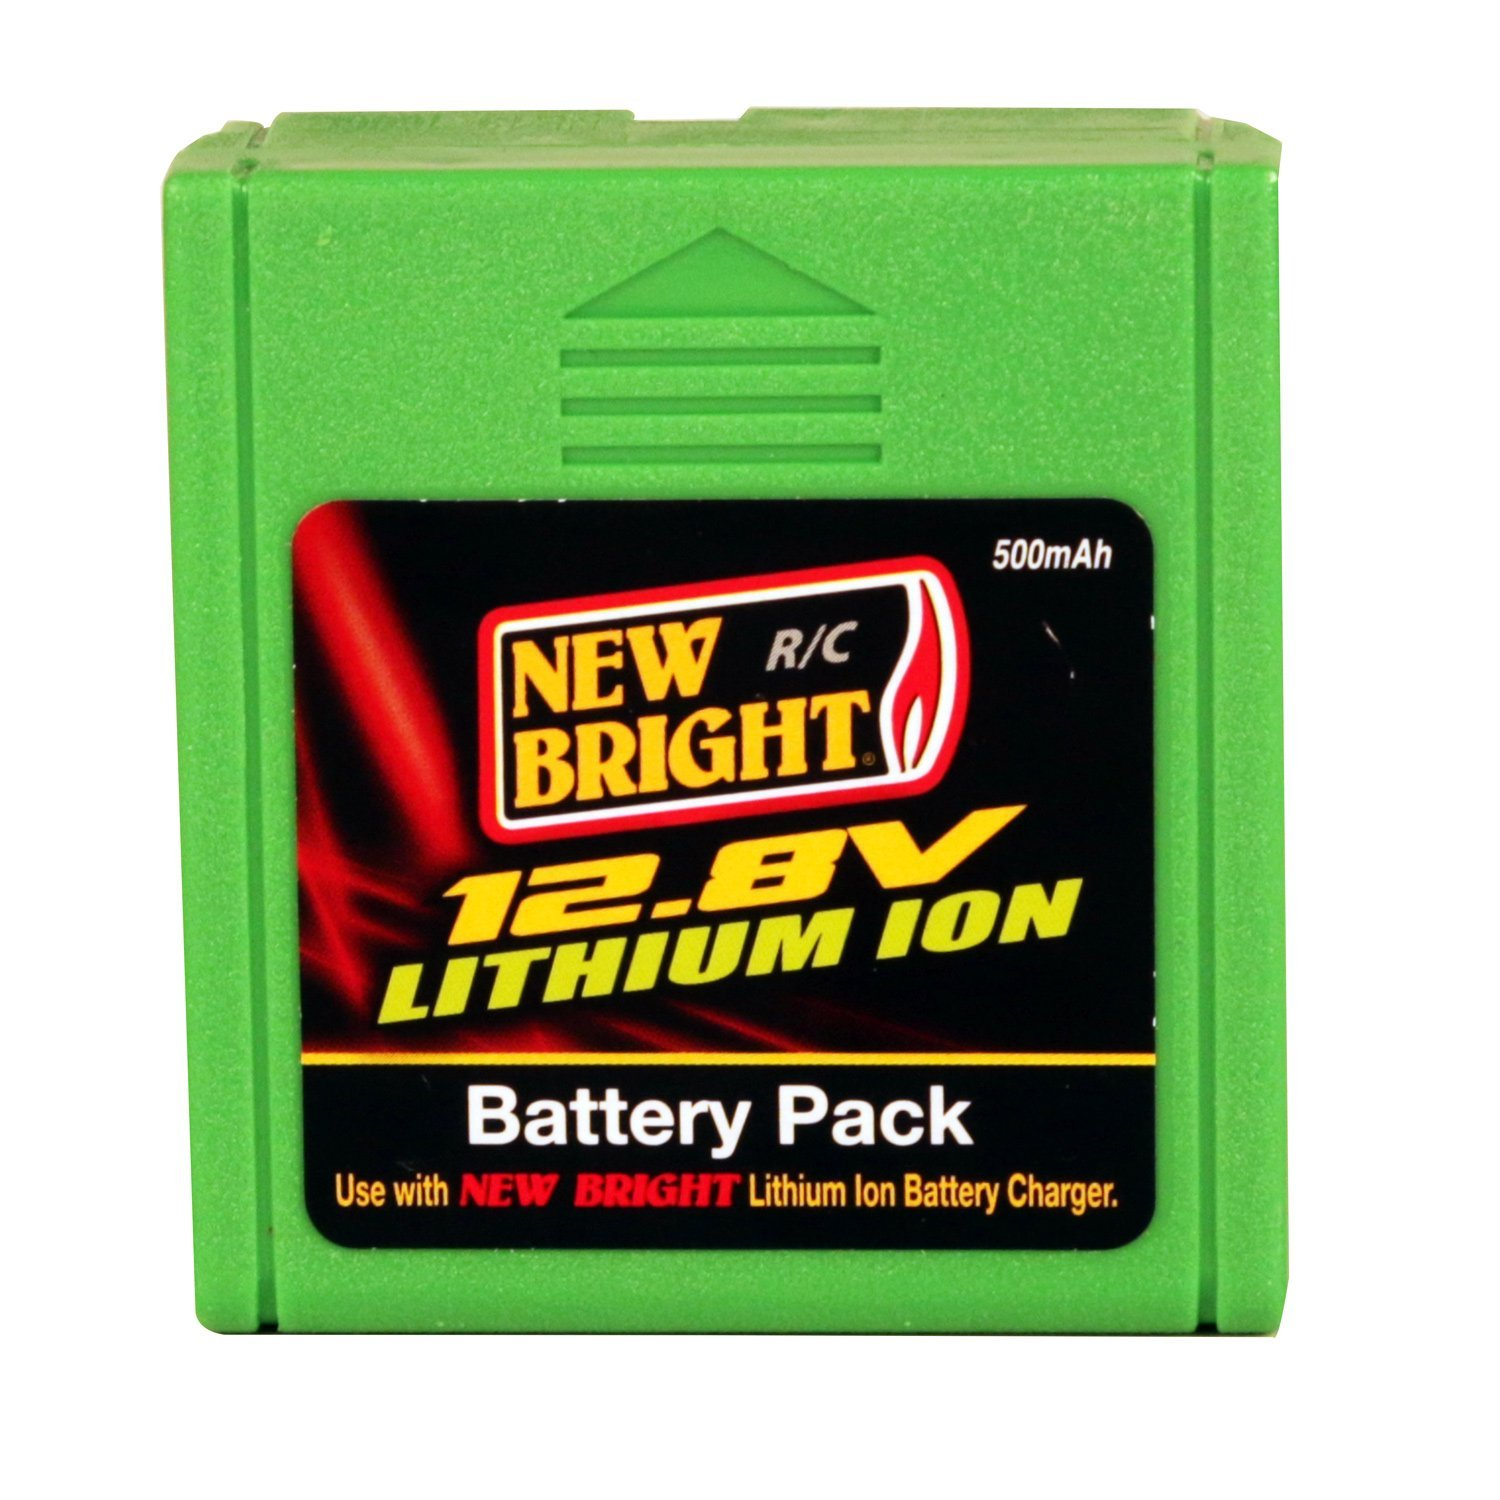 RC CHARGERS New Bright (Official) RC 12.8 Volt Lithium Ion Rechargeable Battery Pack